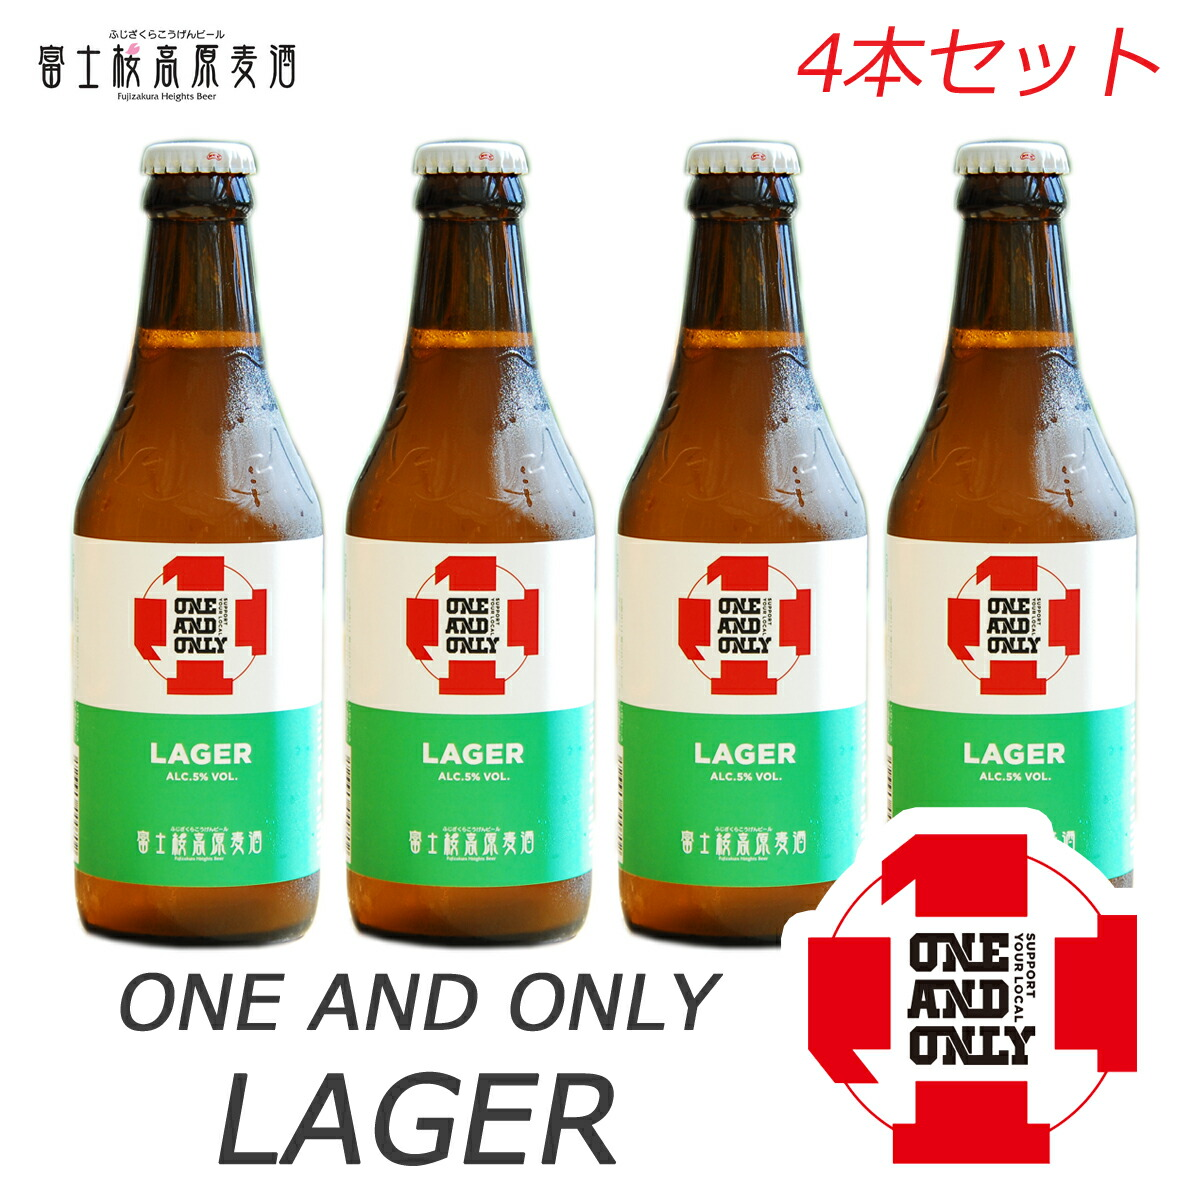 ONE AND ONLY LAGER